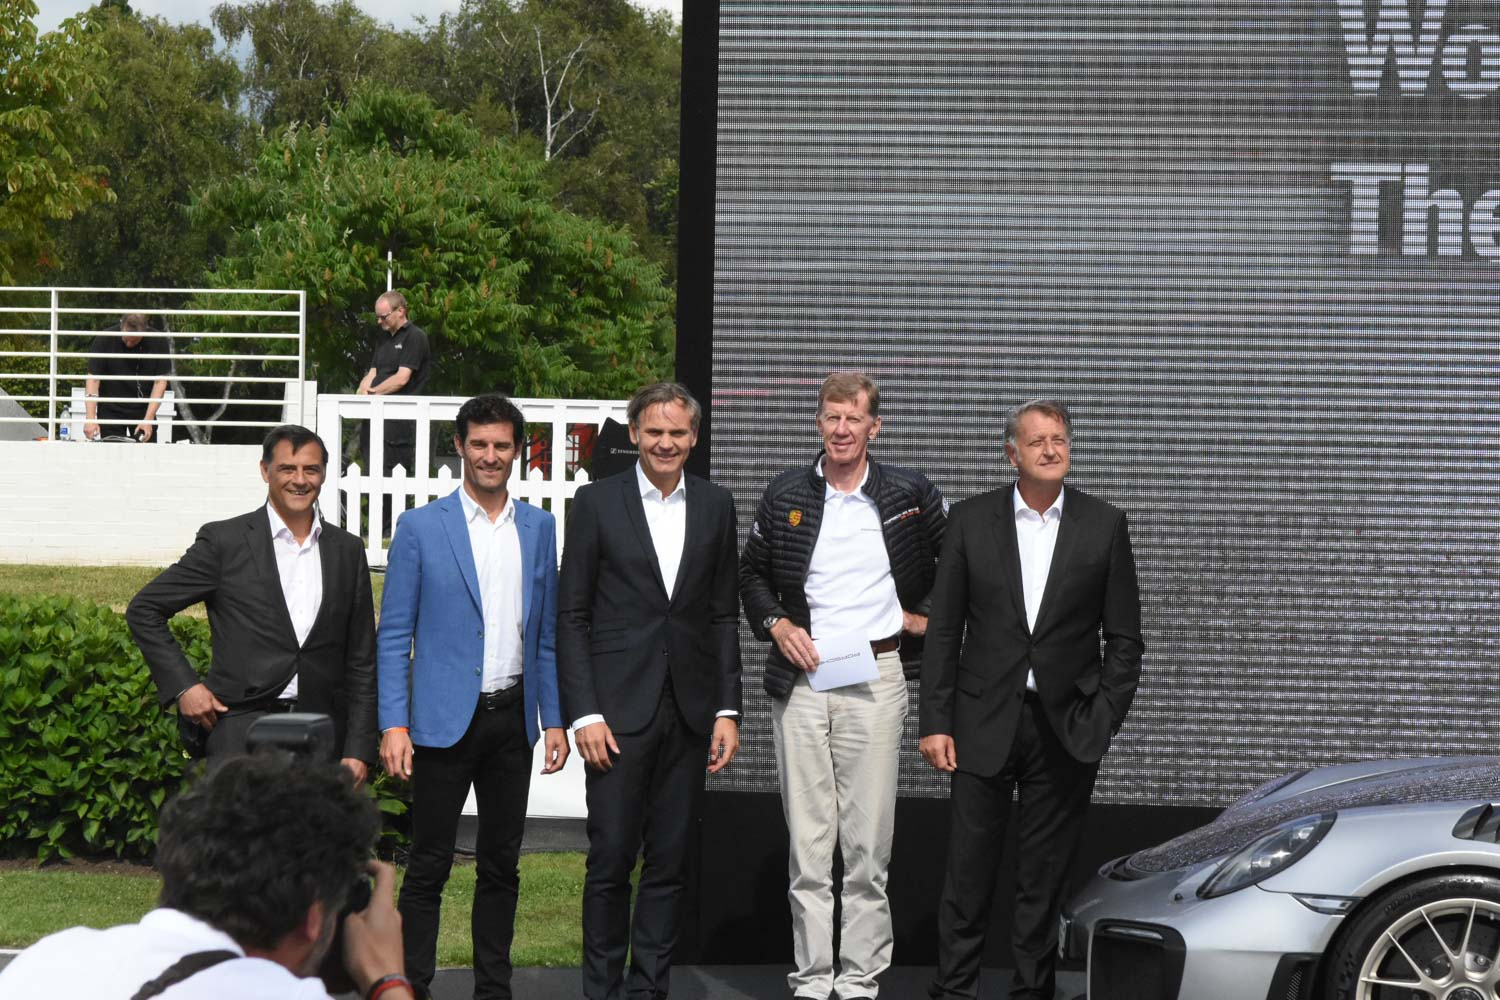 unknown, Mark Webber, Oliver Blume (chairman of the executive board), Walter Röhrl, Detlev von Platen